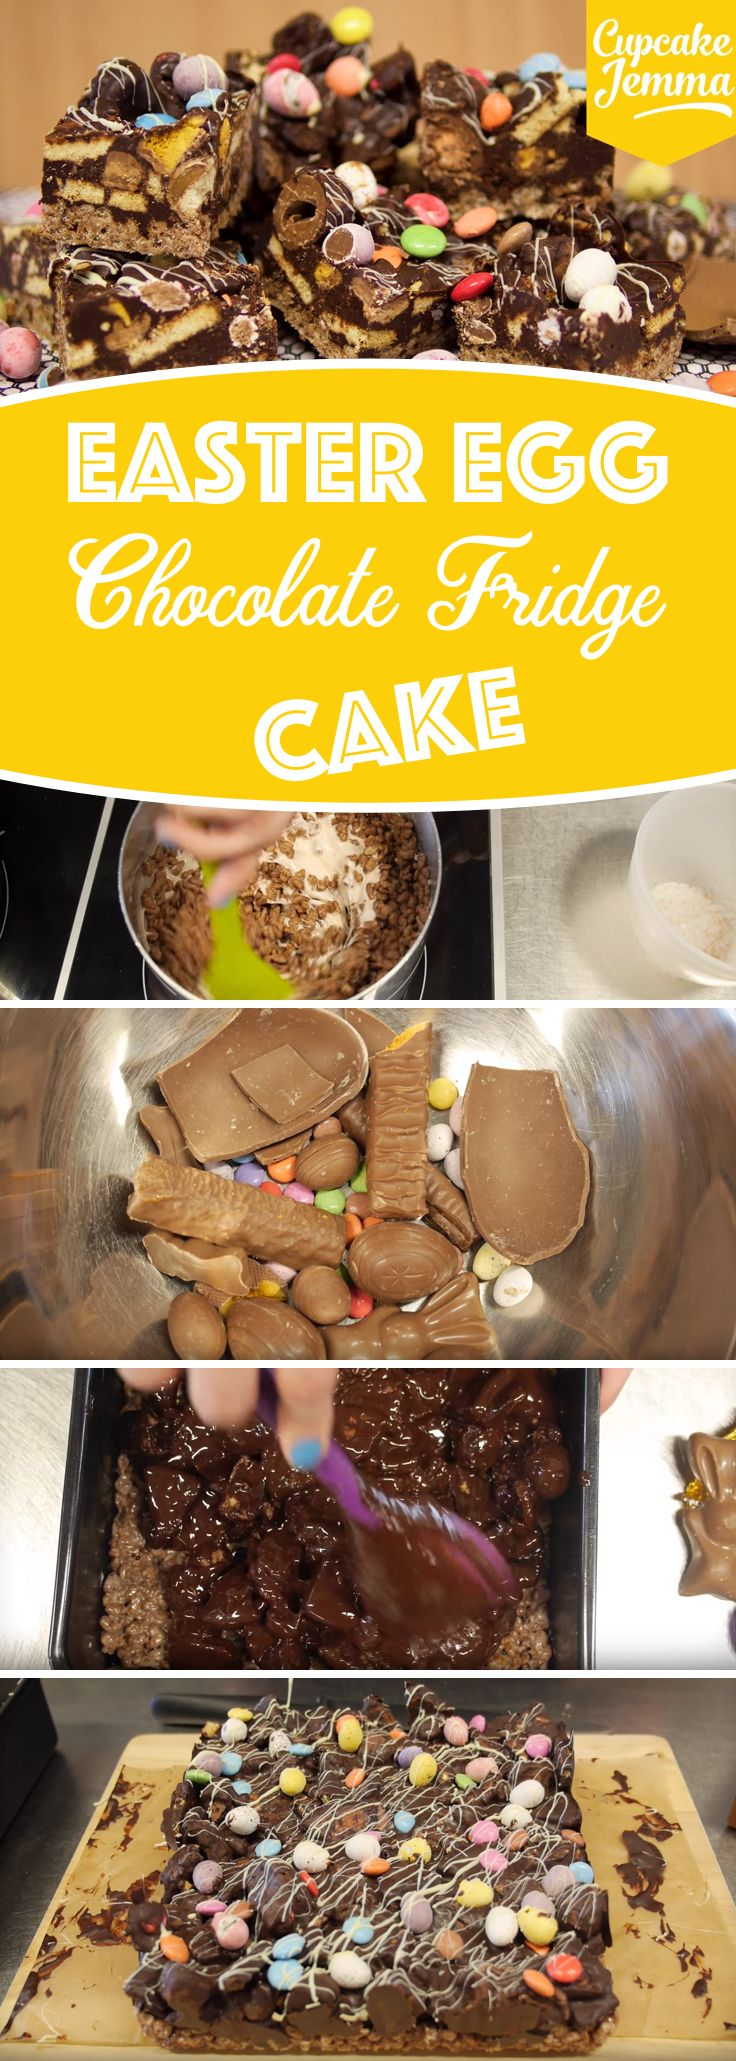 Give an All New Purpose to Festive Eggs with this Toothsome Easter Egg Chocolate Fridge Cake! (video recipe)